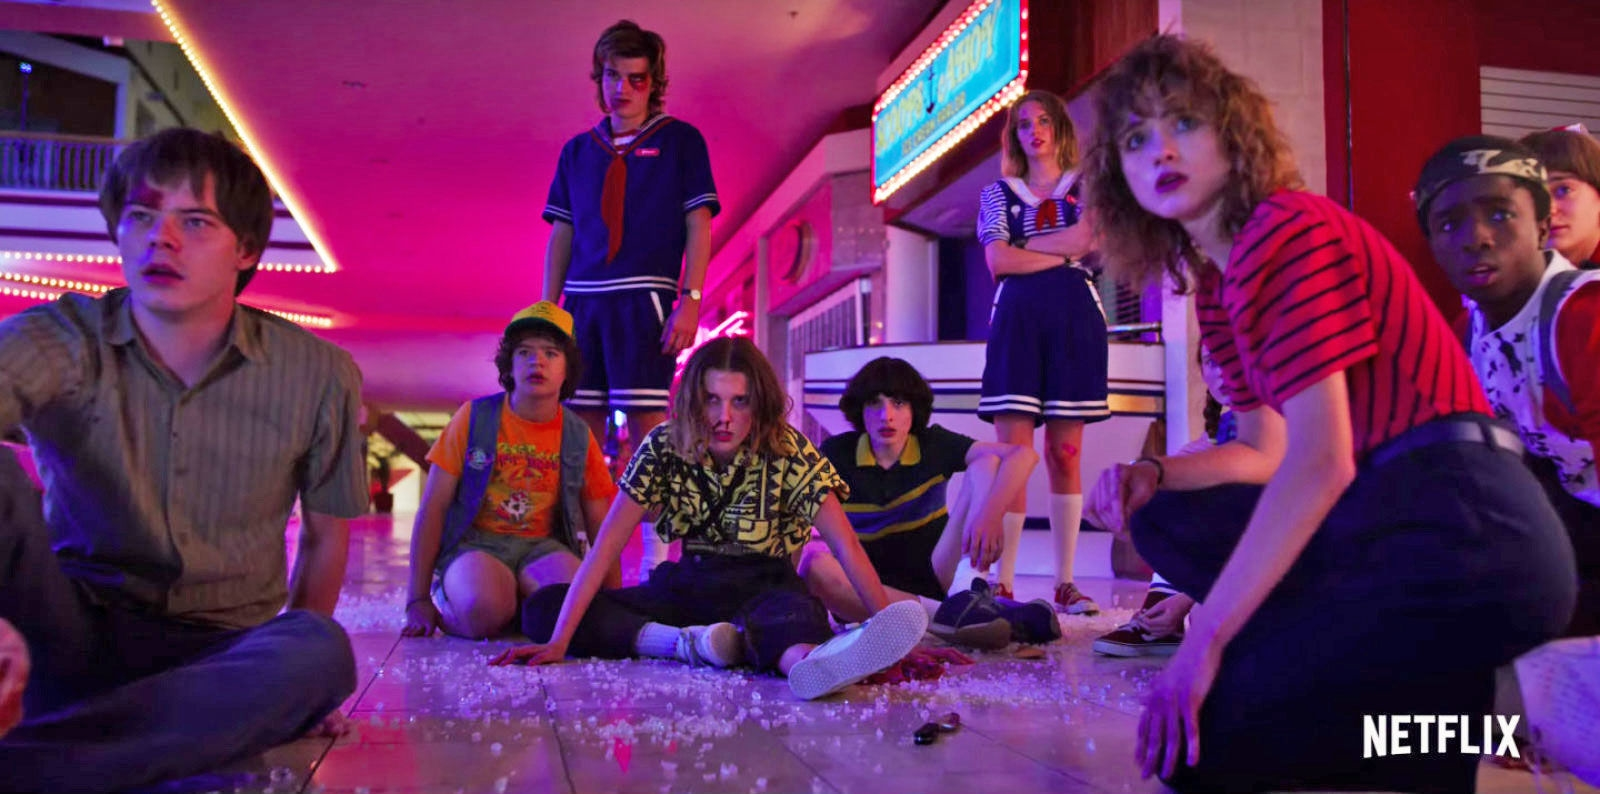 First 'Stranger Things 3' trailer reunites the gang | DeviceDaily.com